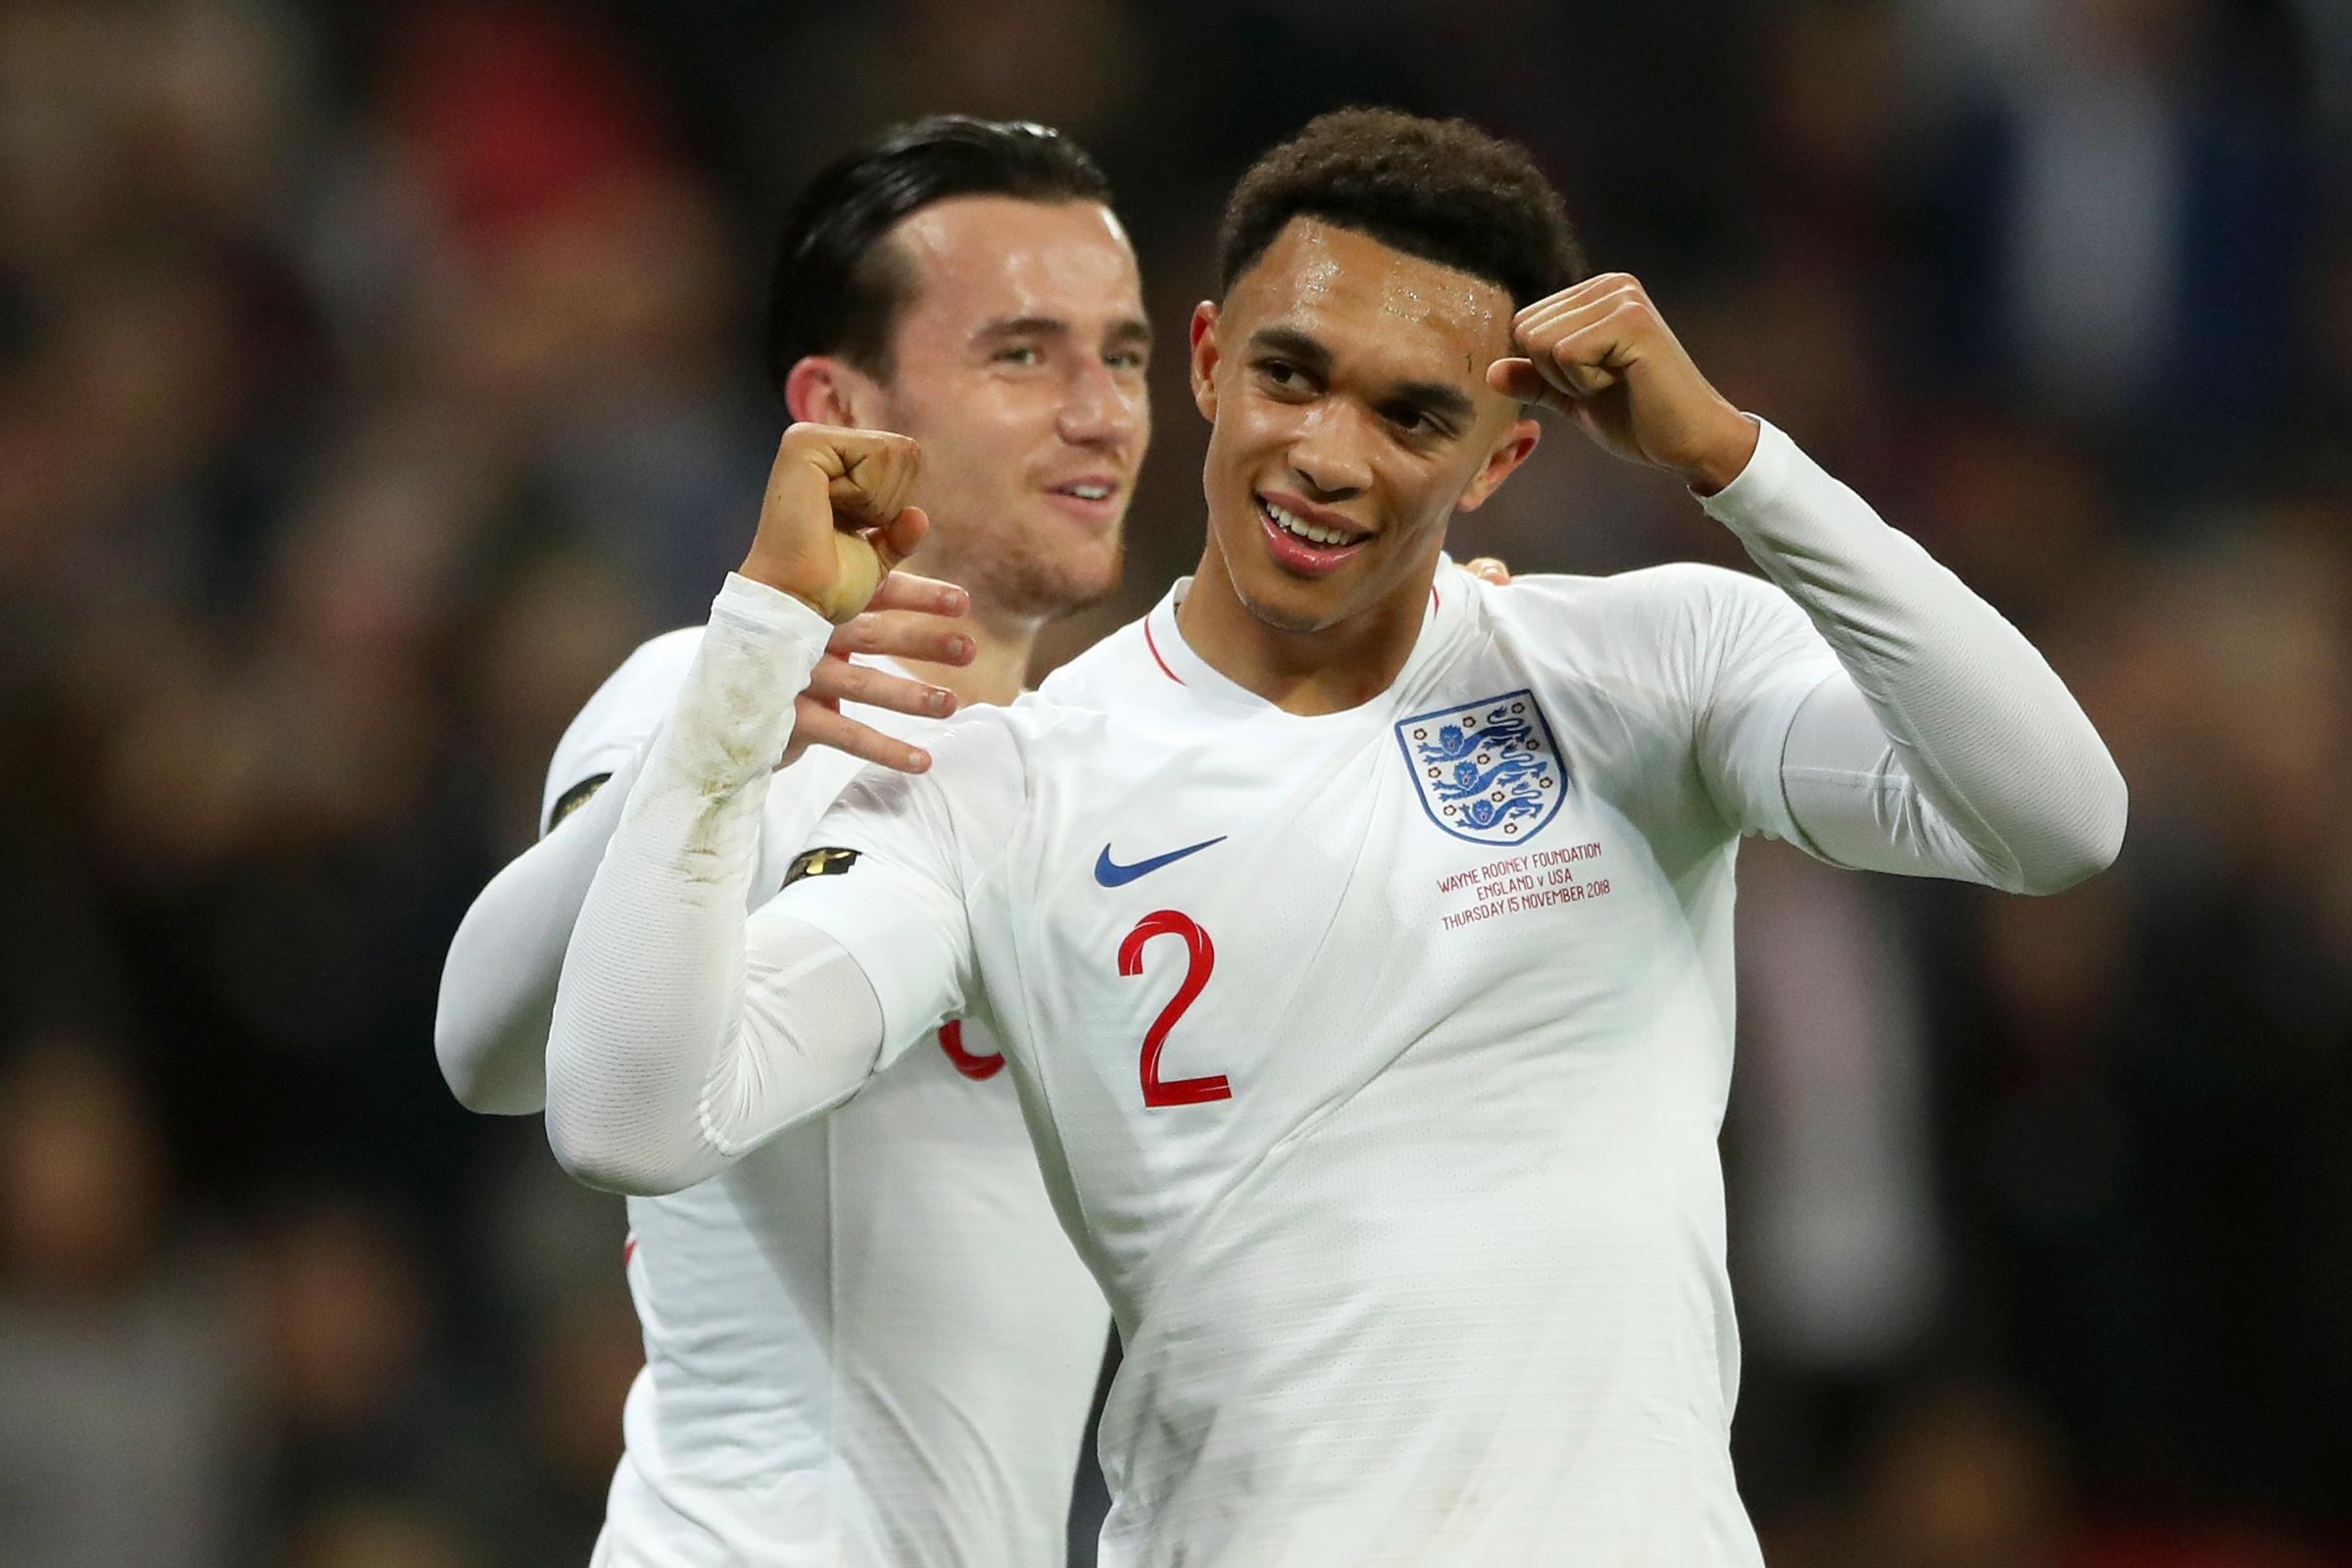 Trent Alexander-Arnold has withdrawn from the England squad